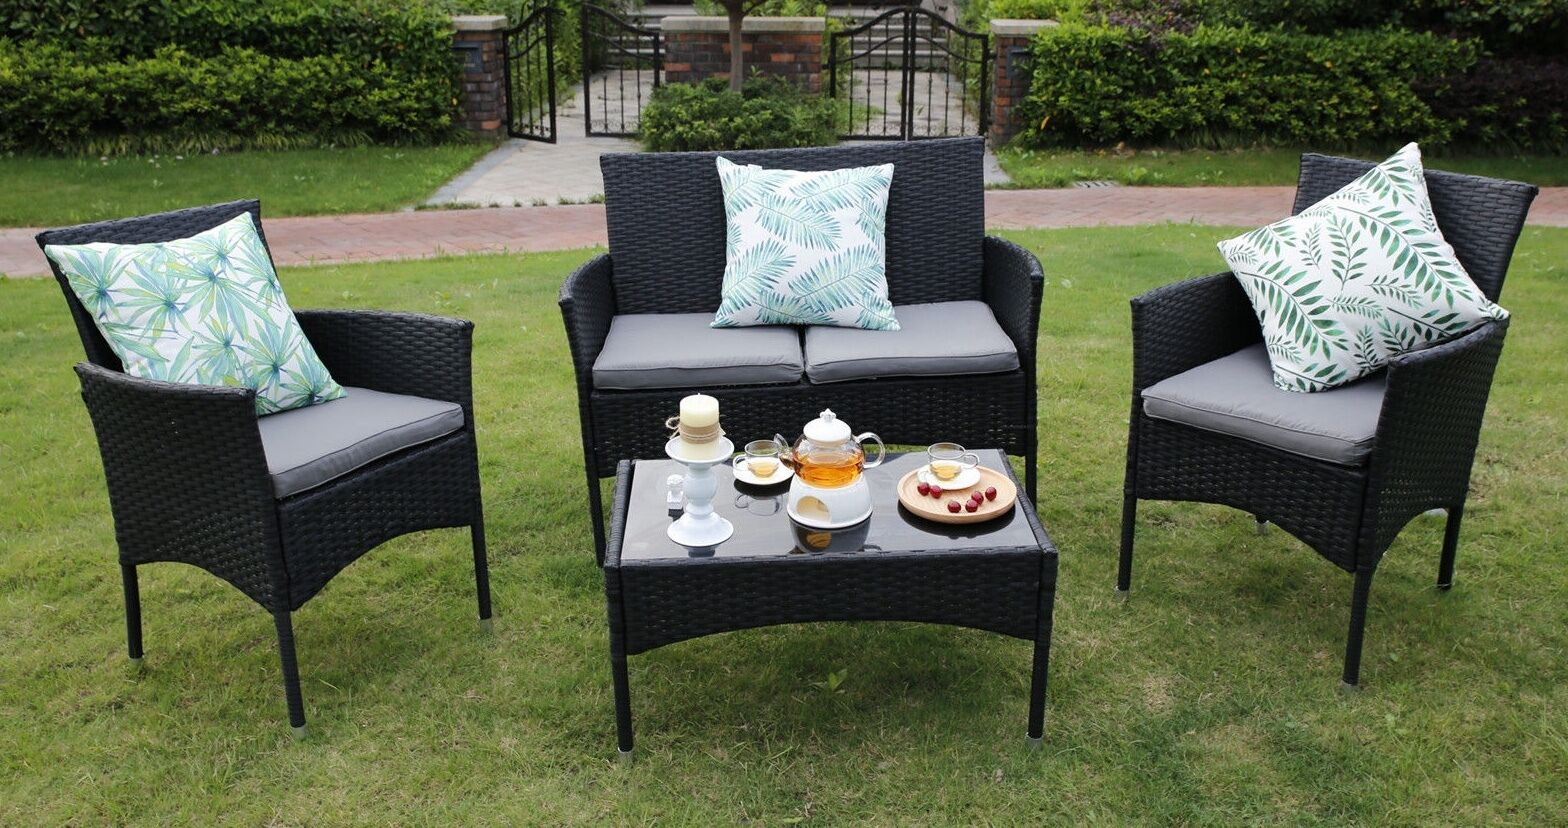 Garden Furniture - 3/4-Piece Outdoor Rattan Garden Furniture Conservatory Sofa Set Table and Chairs